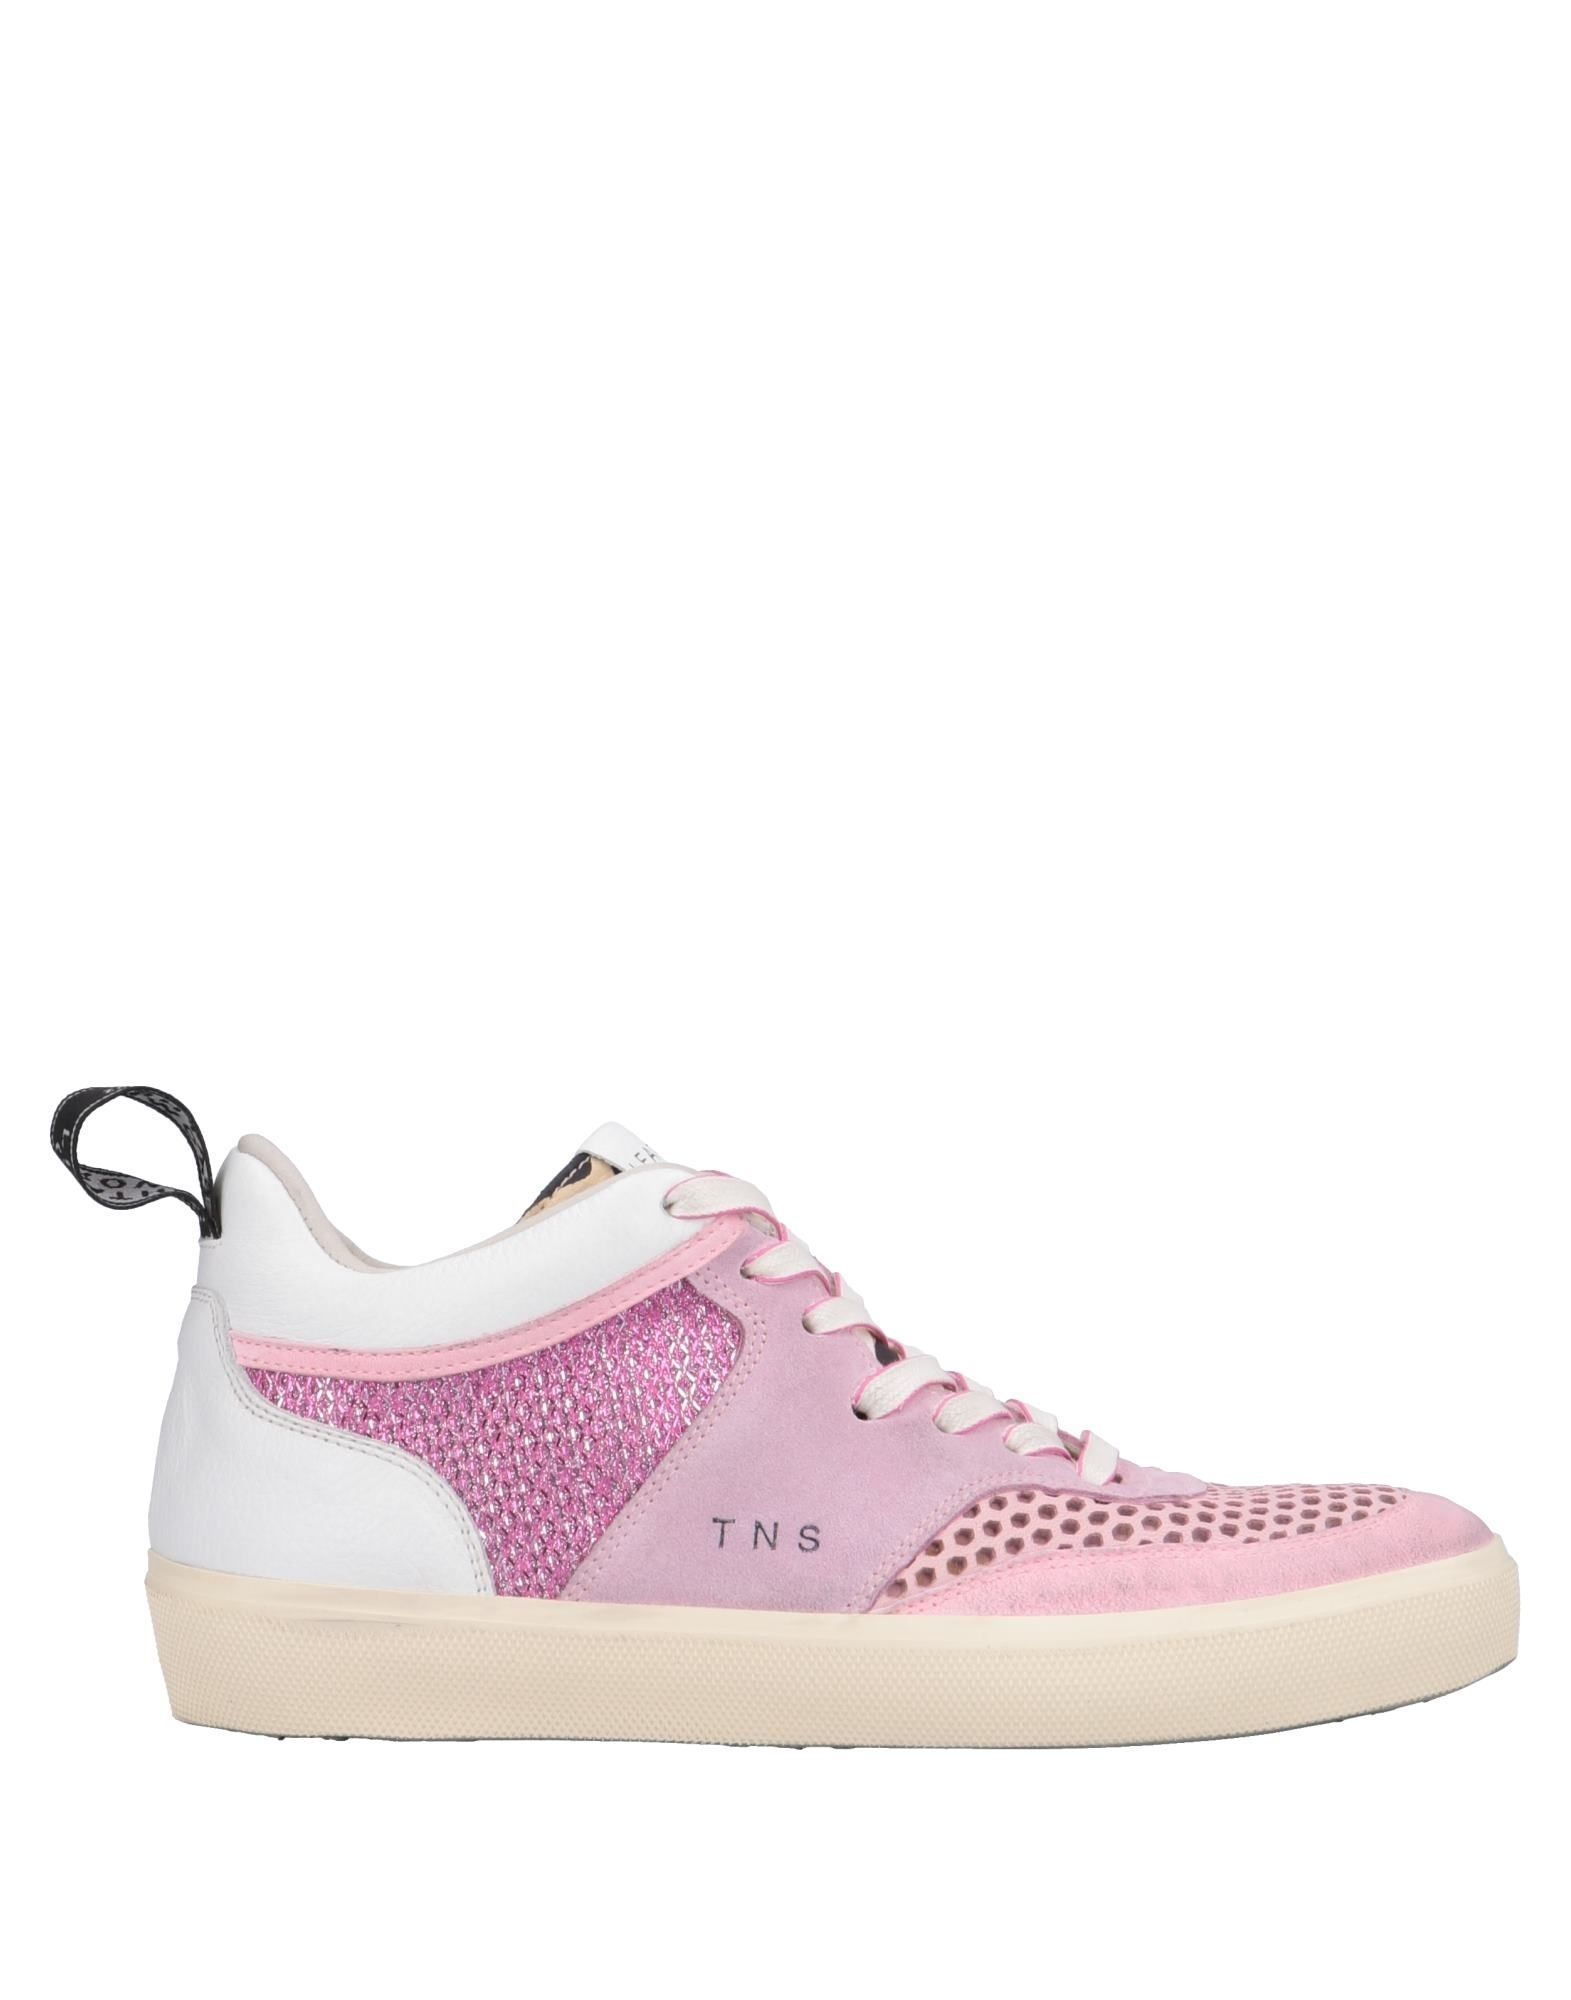 Leather Crown Sneakers - Women Leather  Crown Sneakers online on  Leather United Kingdom - 11563883DP 40f8ab